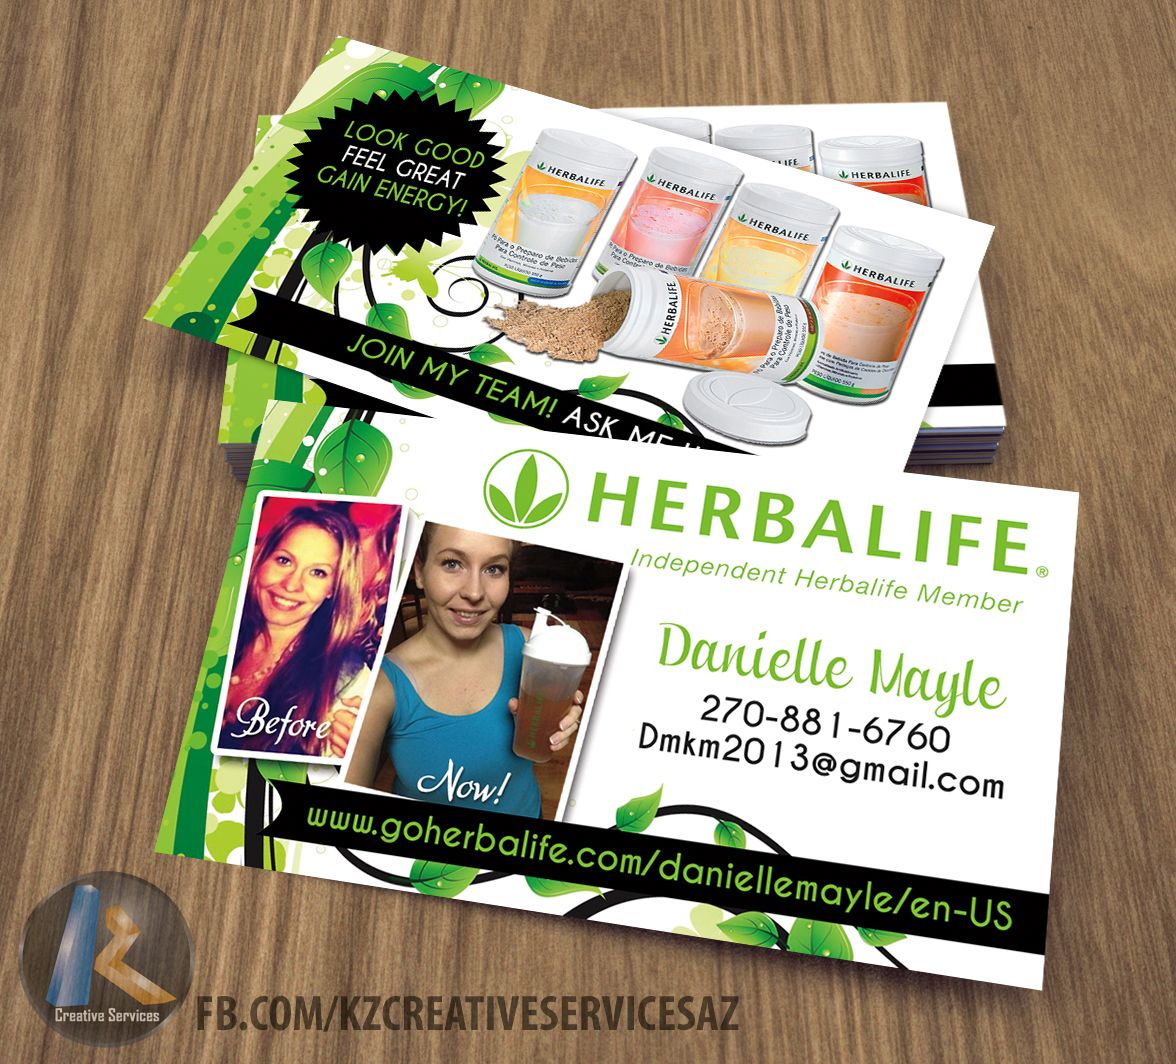 Herbalife Business Cards style 2 from KZ Creative Services